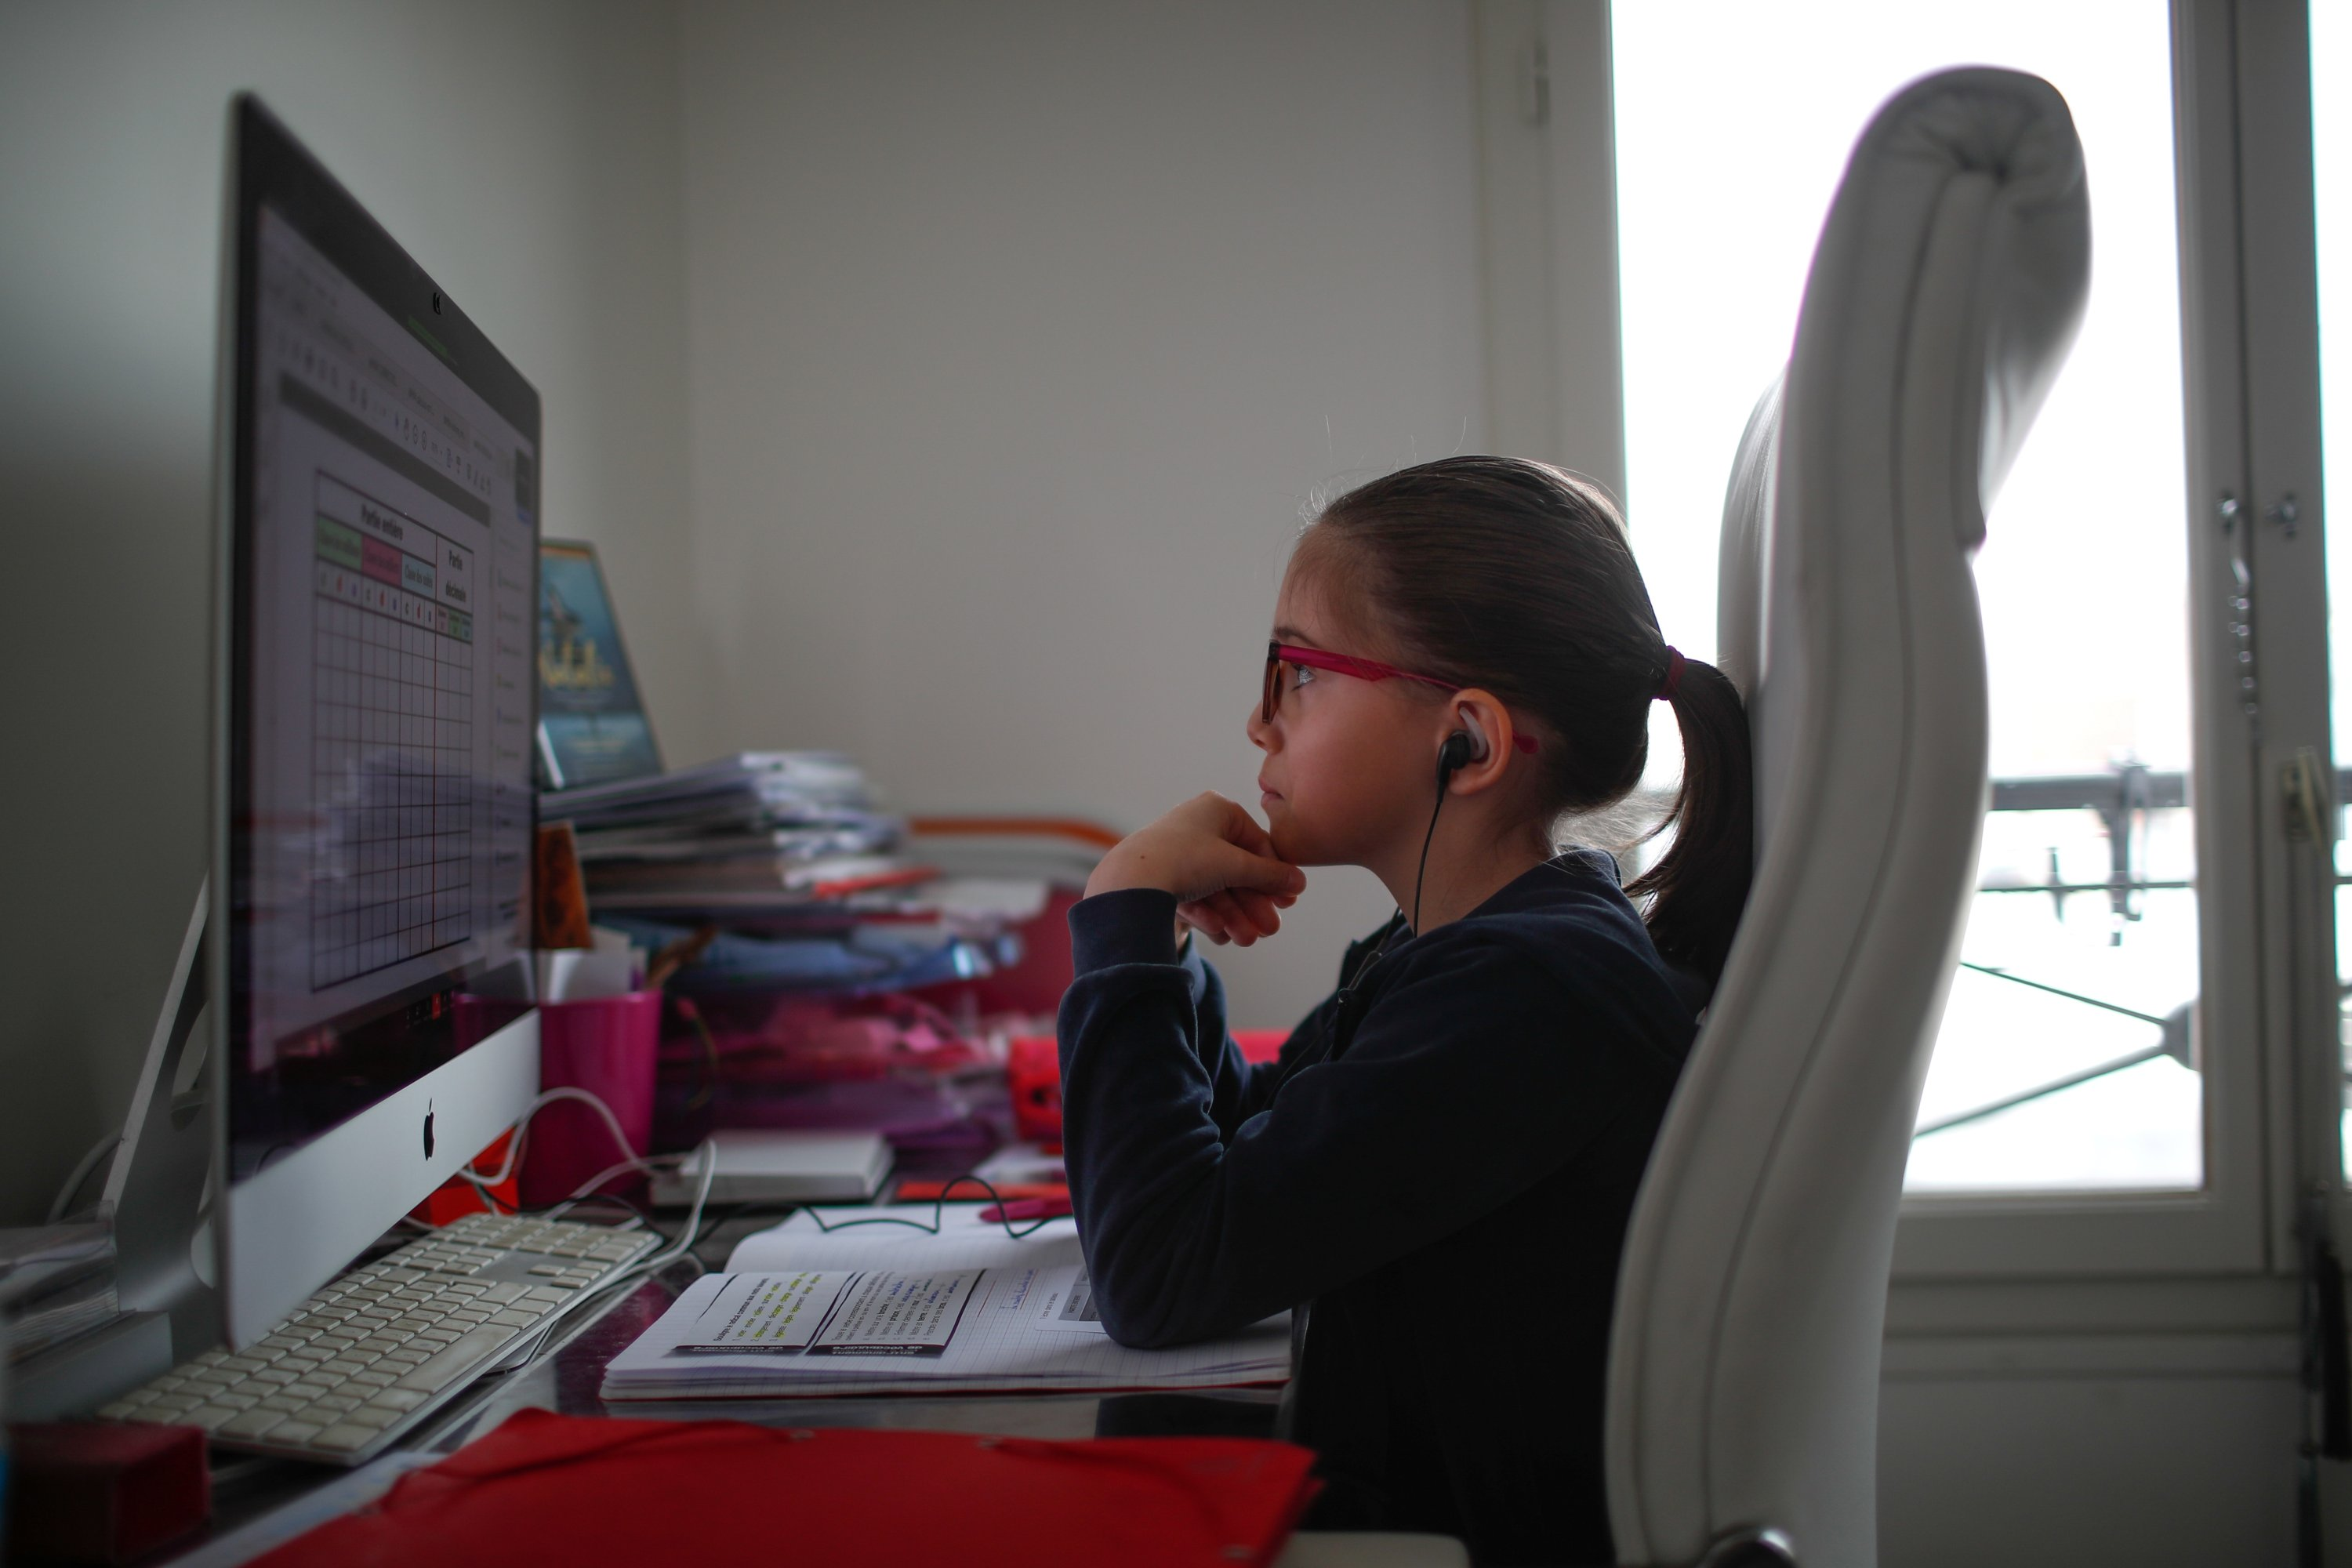 A student at the International Bilingual School (EIB) attends her online lessons in her bedroom in Paris, France, March 20, 2020. (Reuters Photo)